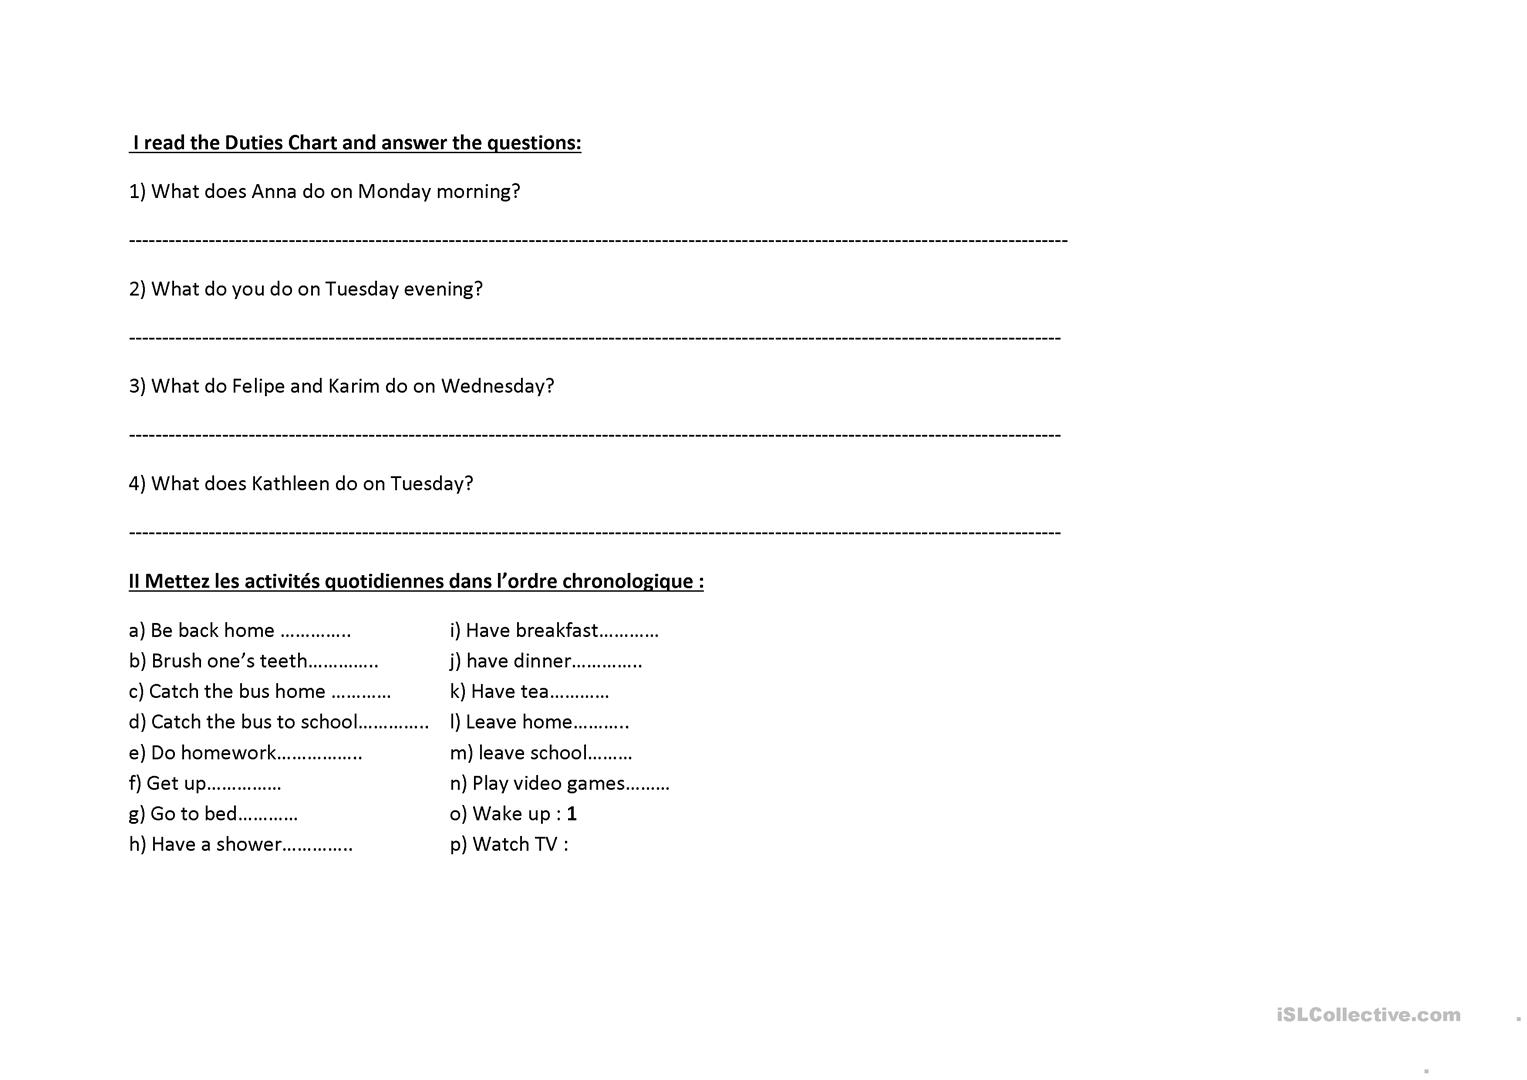 Flatsharing Duties Worksheet